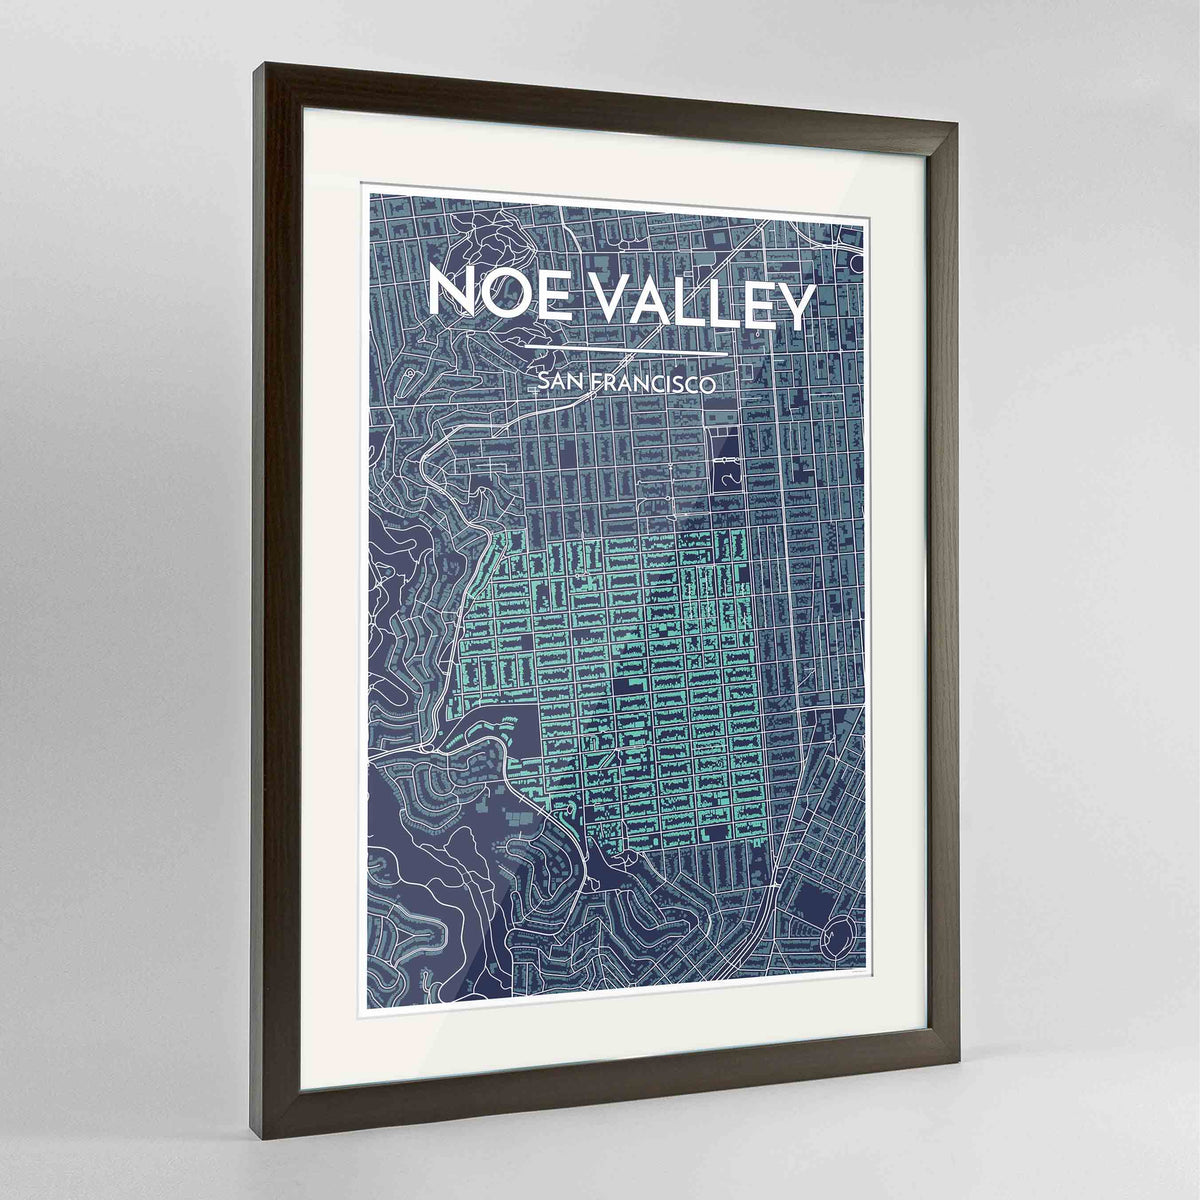 "Framed Noe Valley, San Francisco Map Art 24x36"" Contemporary Walnut frame Point Two Design Group"